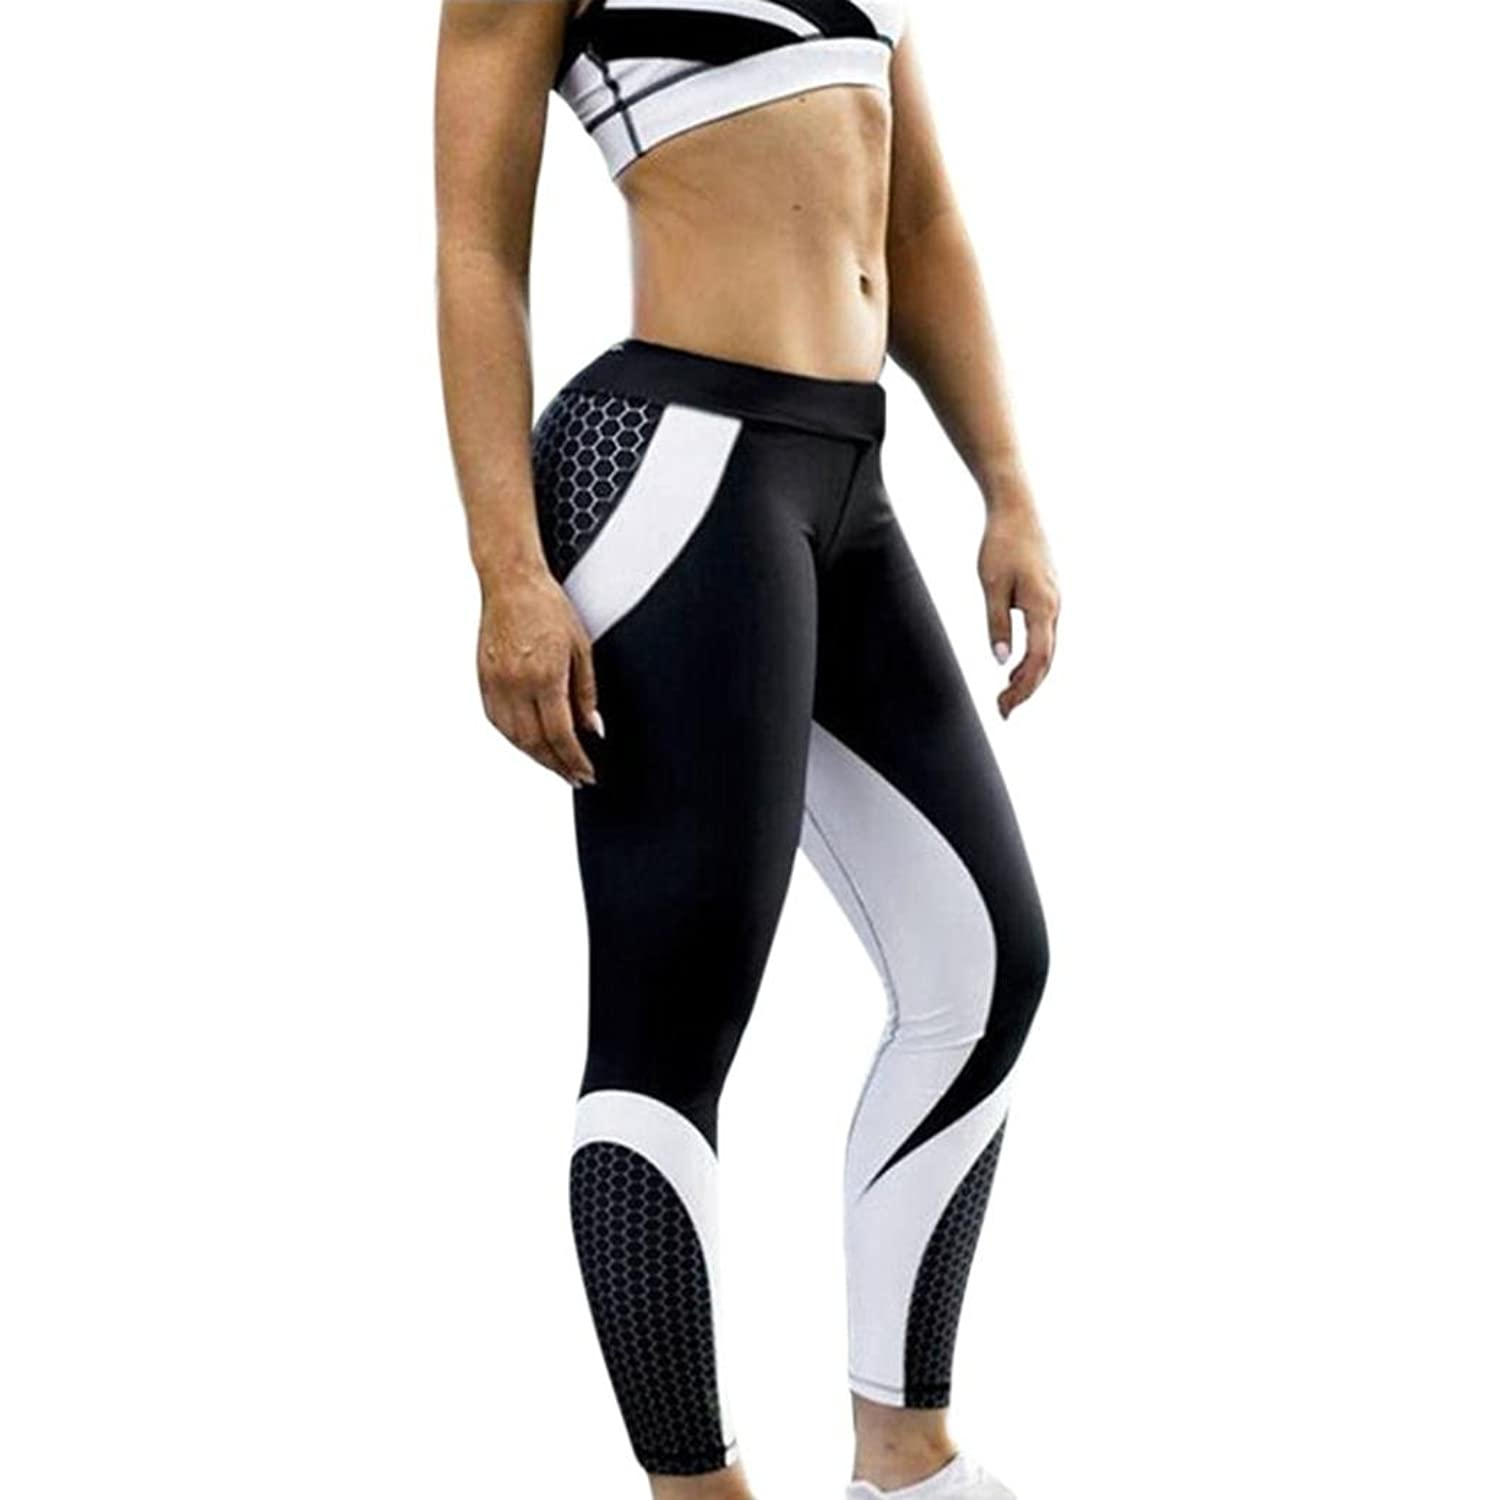 ASTV Womens 3D Print Yoga Skinny Workout Gym Leggings Sports Training Cropped Pants